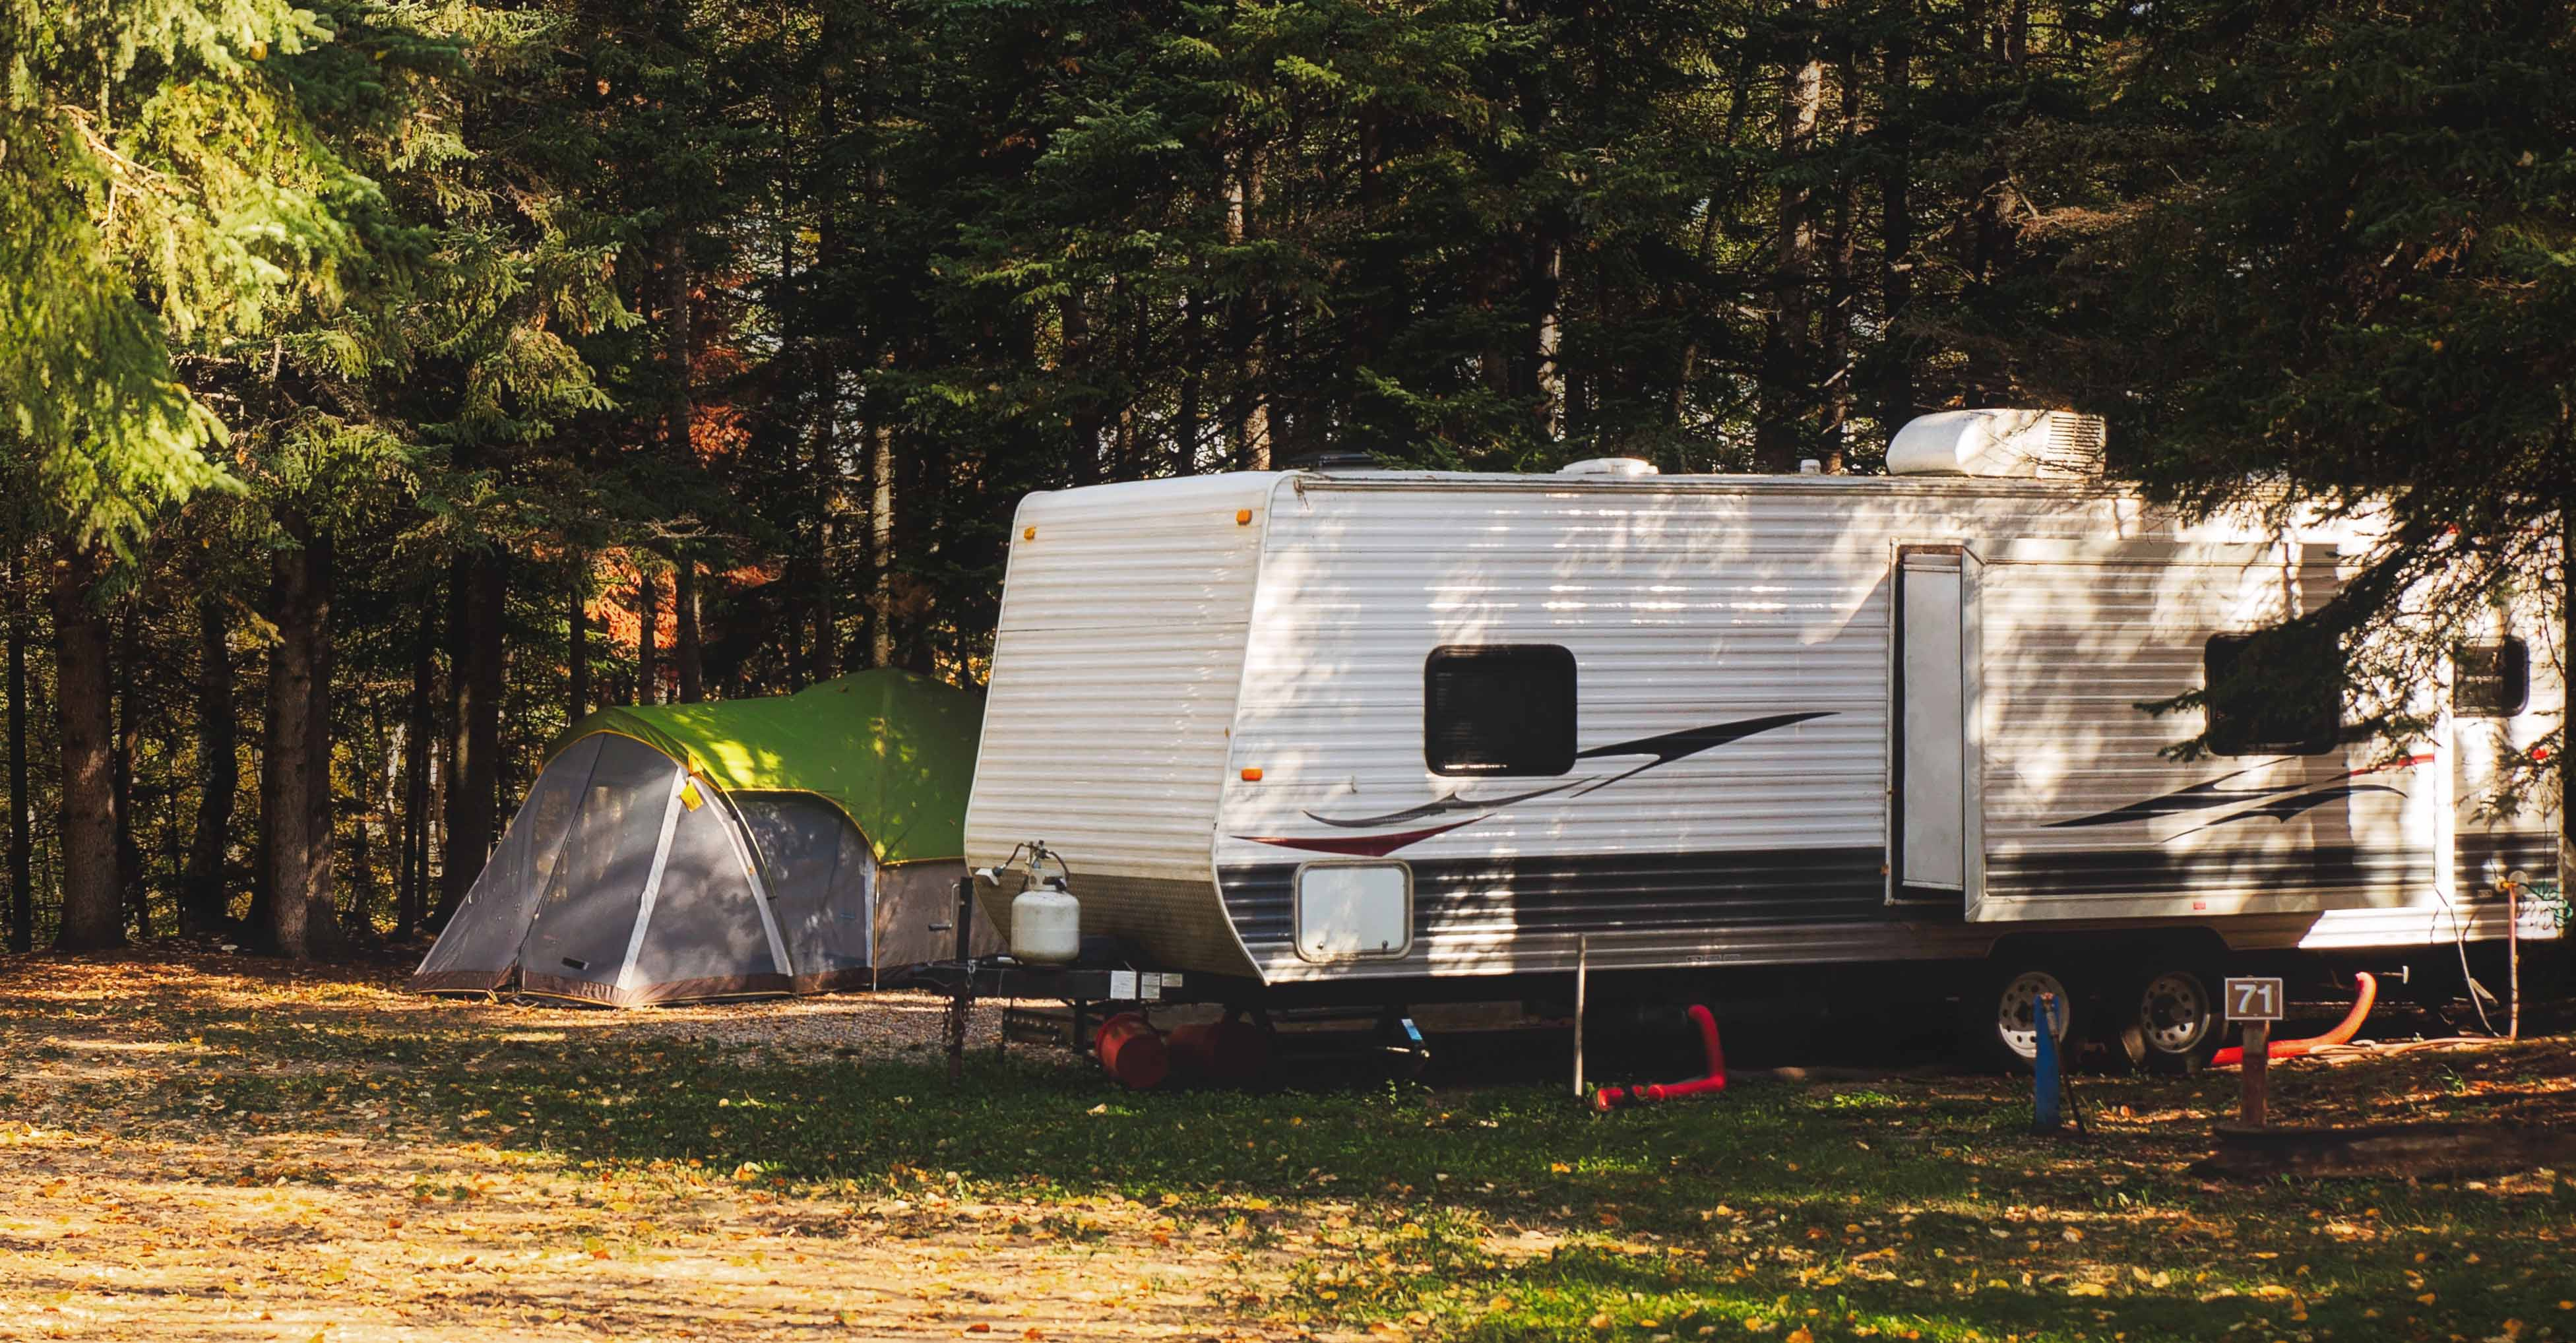 An RV in a wooded Setting.